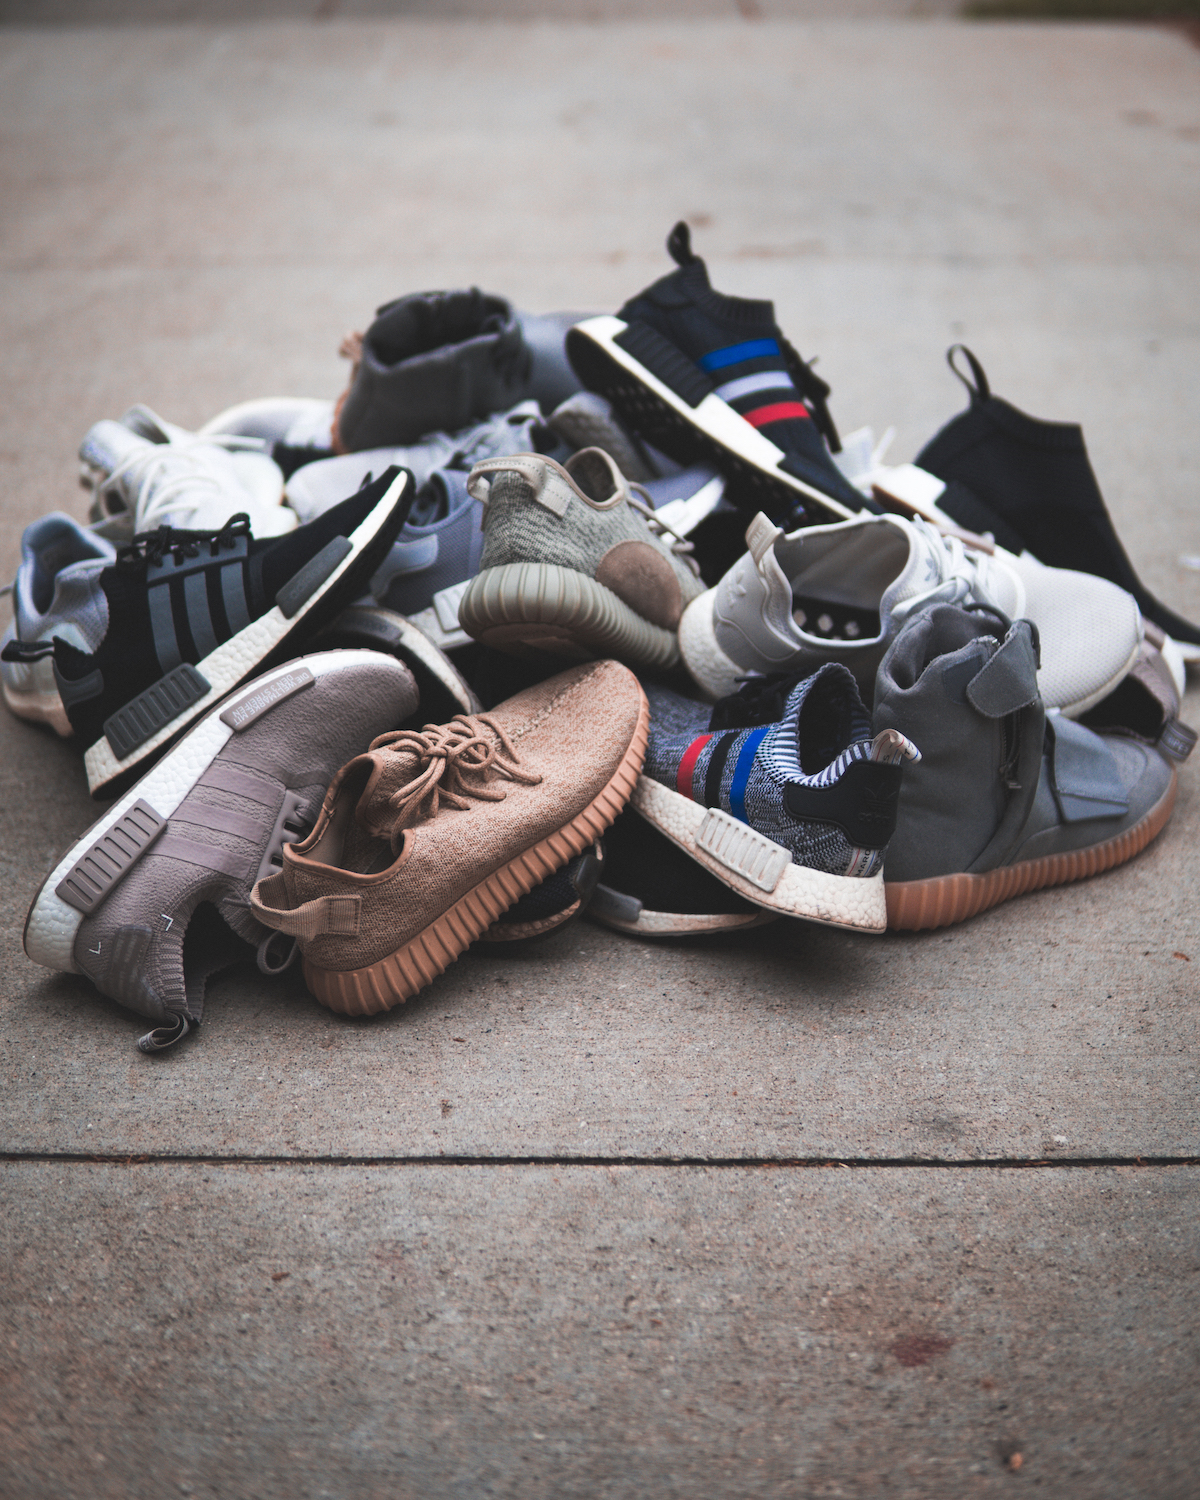 scattered shoes on the floor